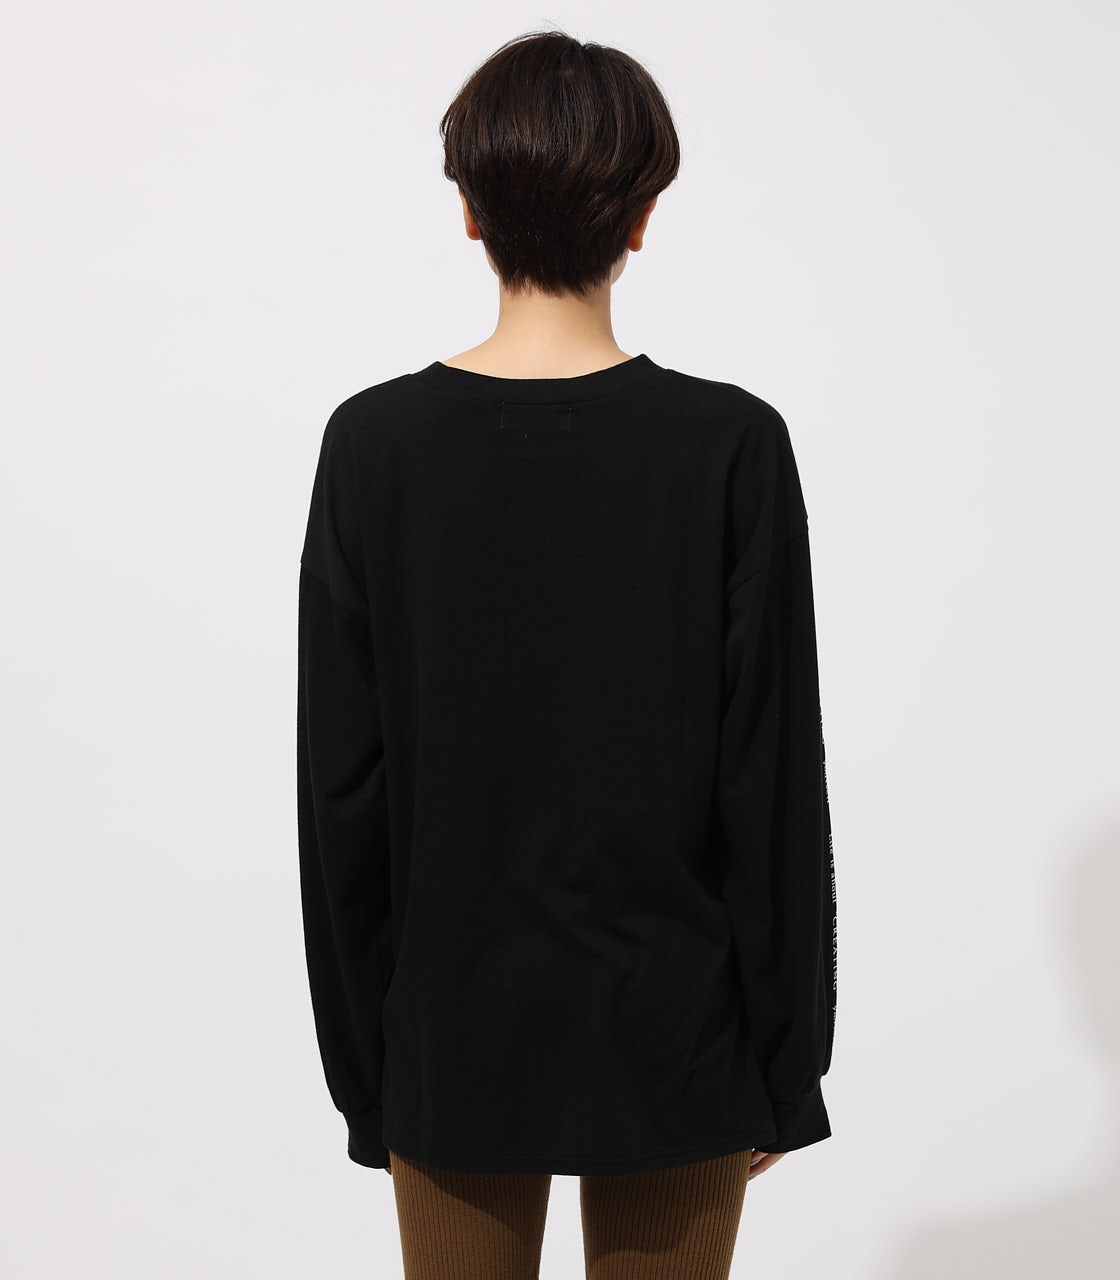 LONG SLEEVE LOOSE TOPS/ロングスリーブルーズトップス 詳細画像 BLK 6